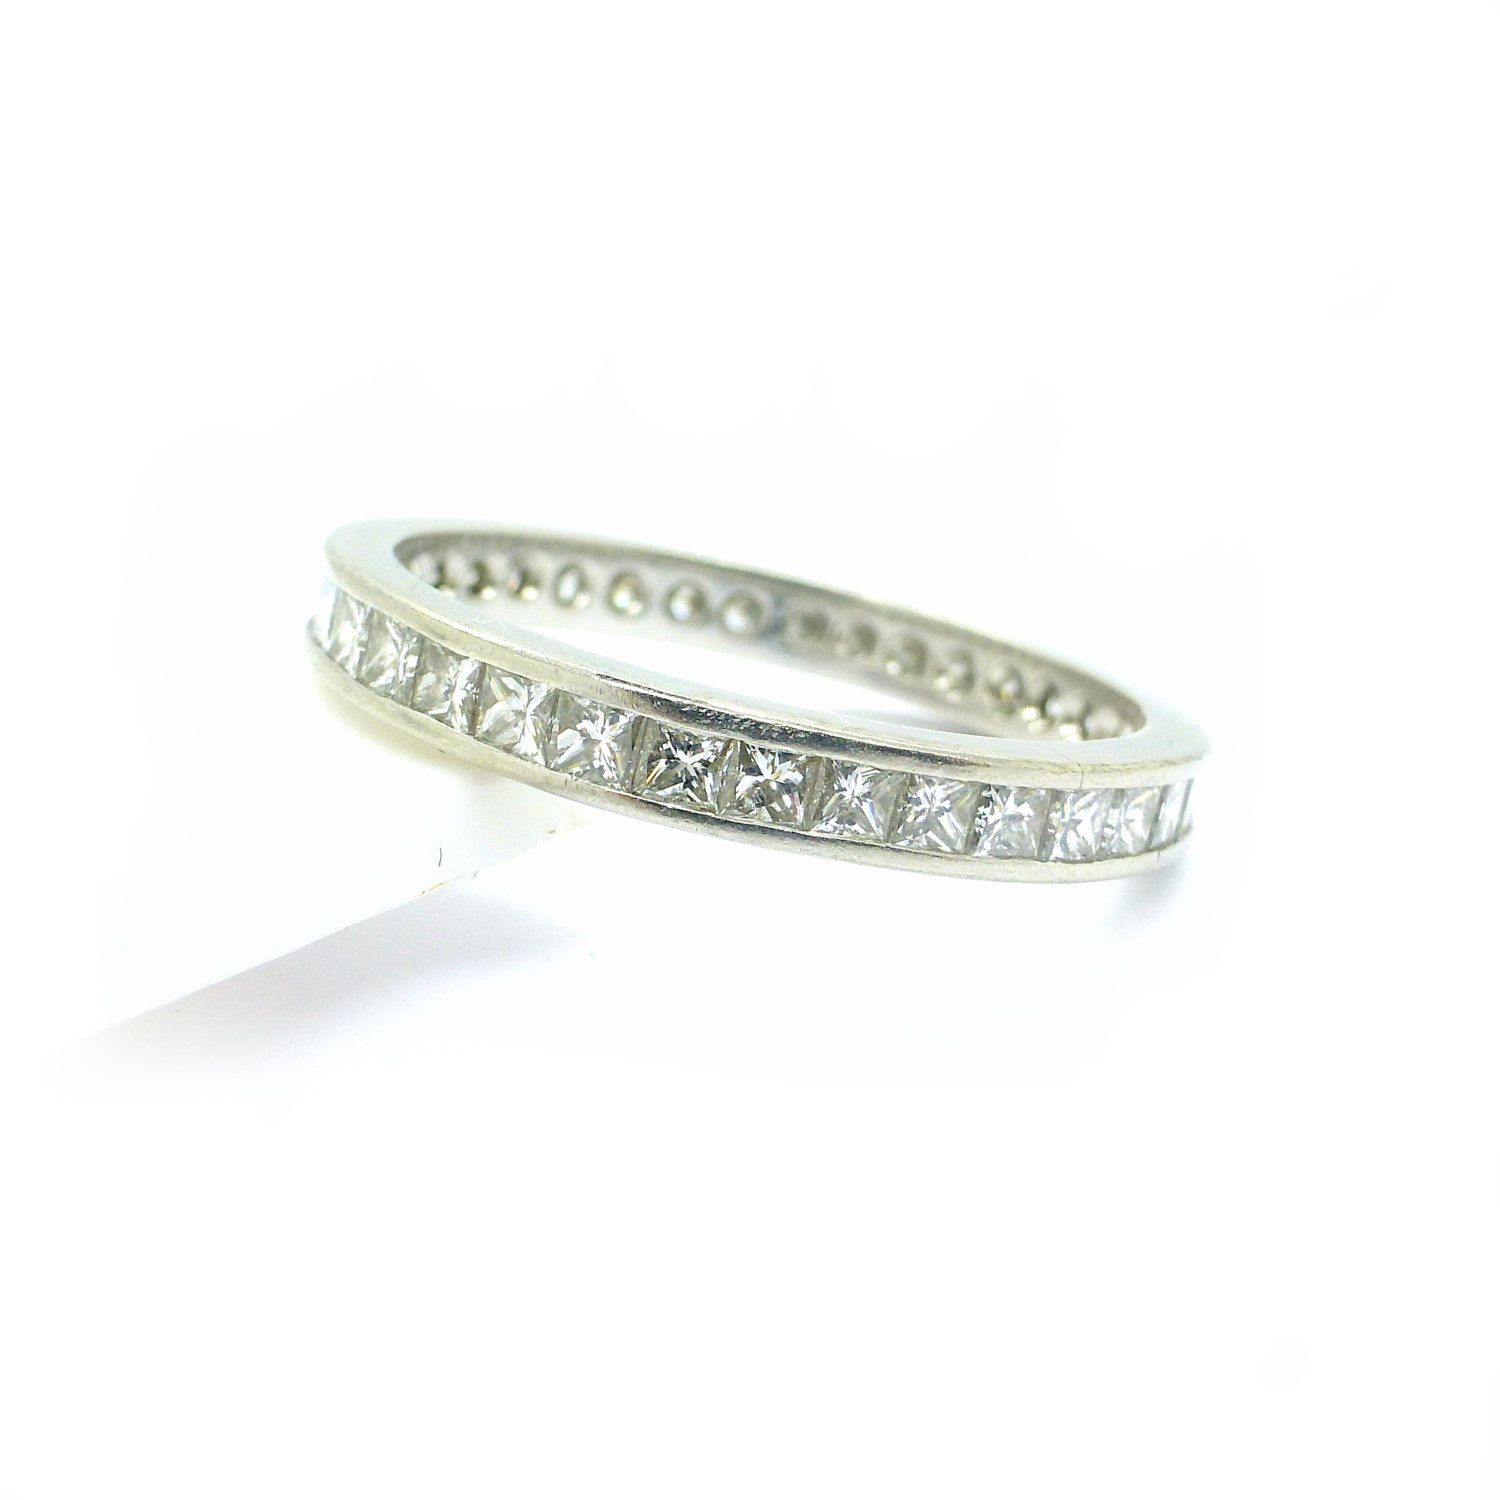 pin band jewelry allegria bands eternity pinterest diamond wedding ring full